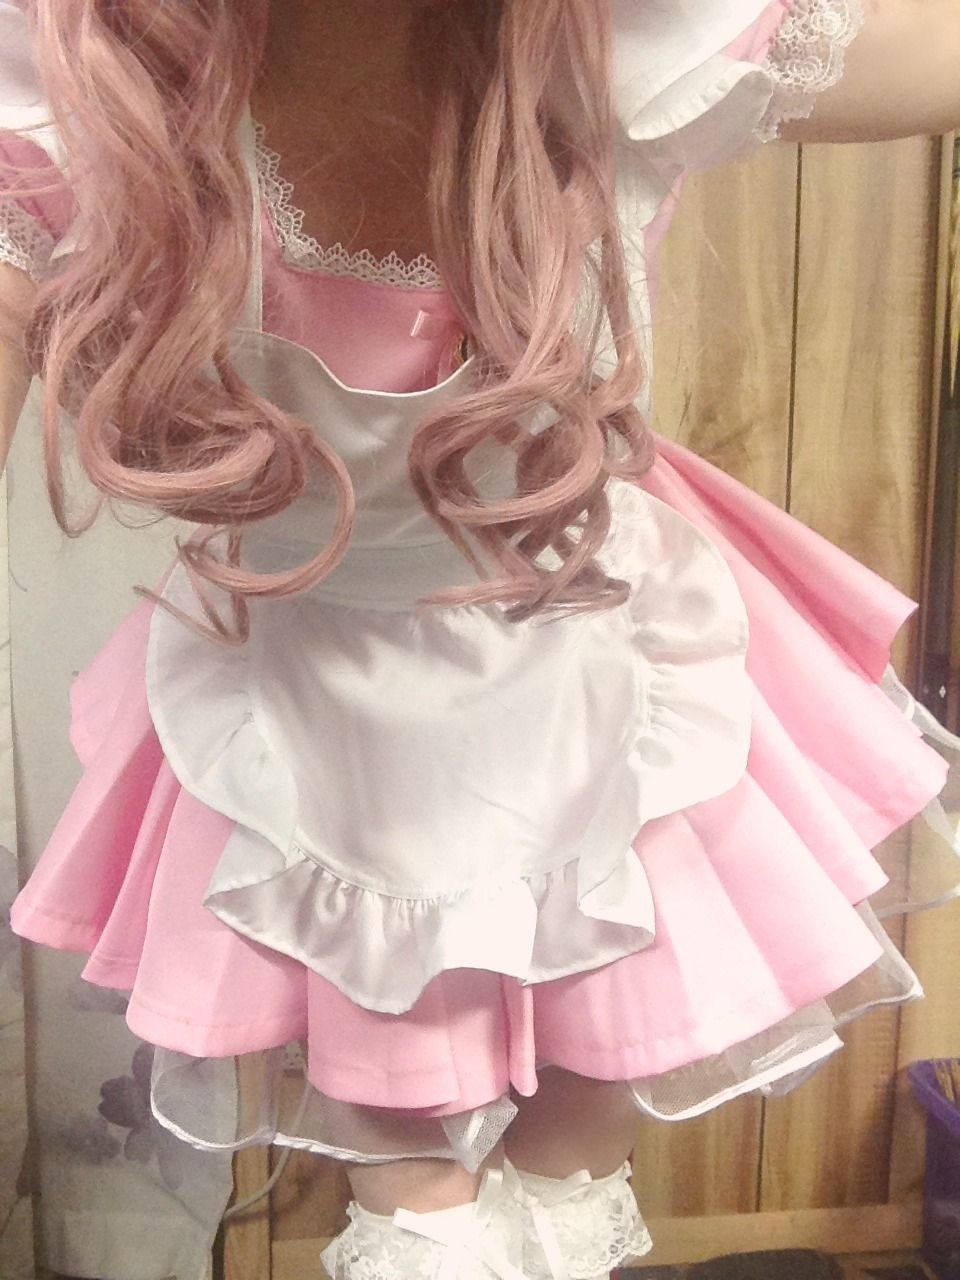 Kawaii Pink Maid Outfit